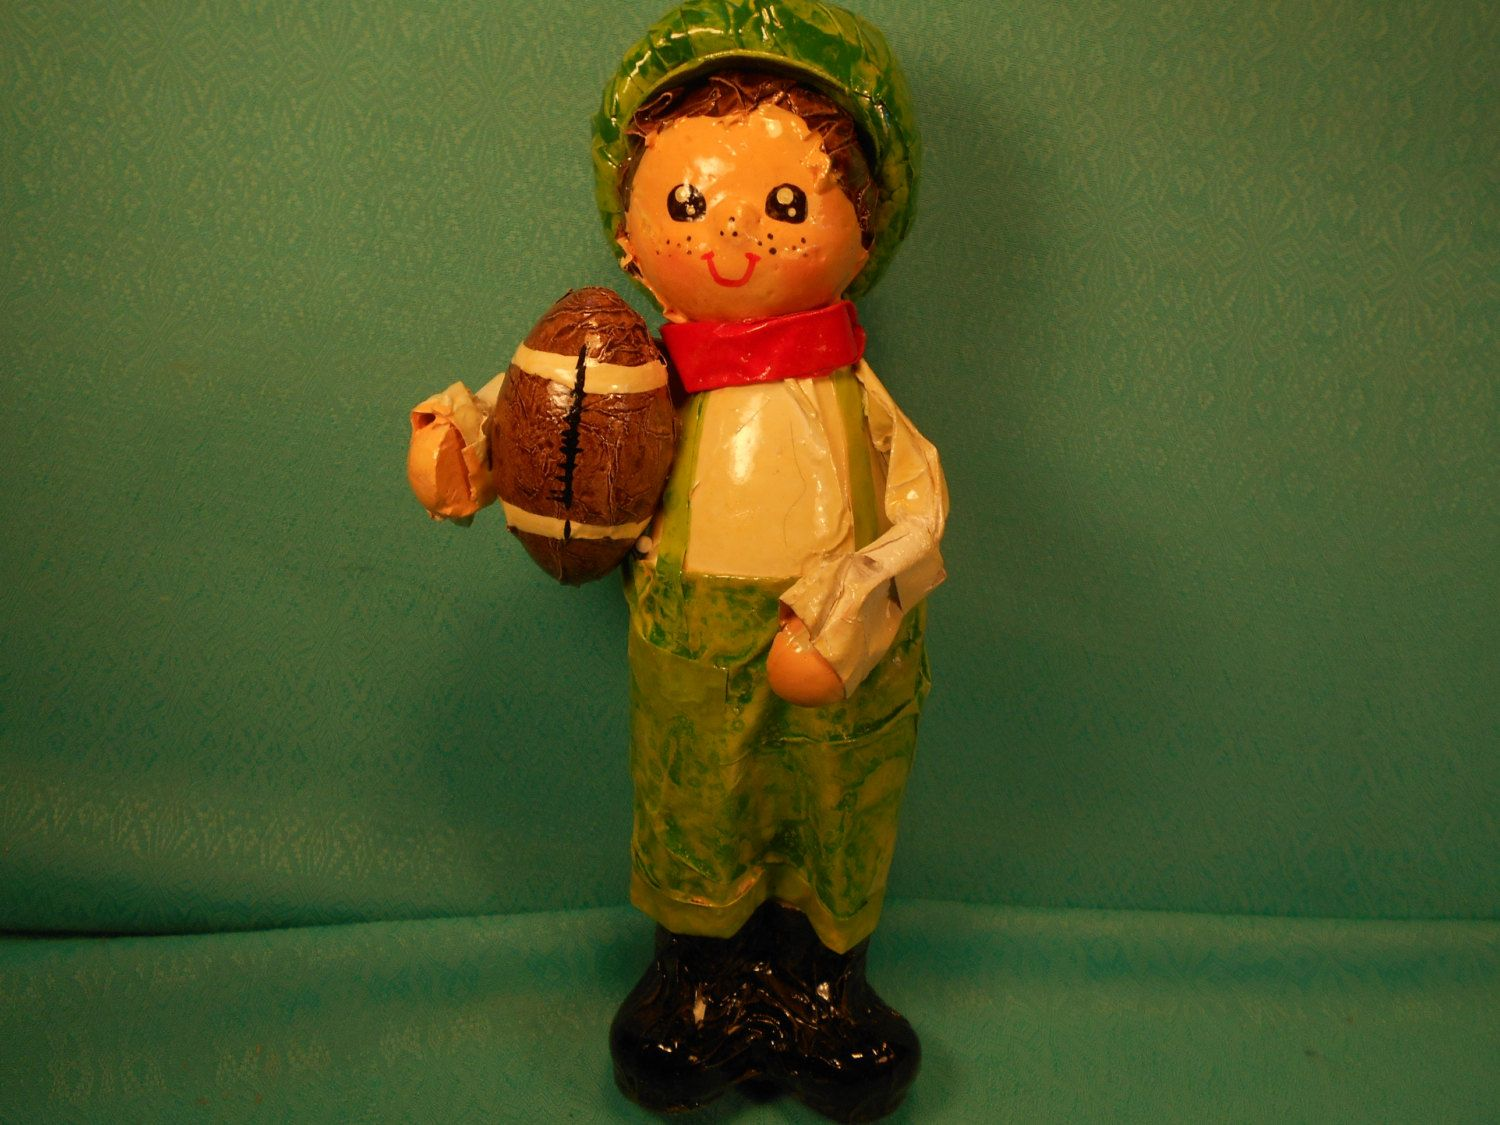 Vintage Ornament, Paper Mache Christmas Ornament, Paper Mache Boy With Football by SETXTreasures on Etsy